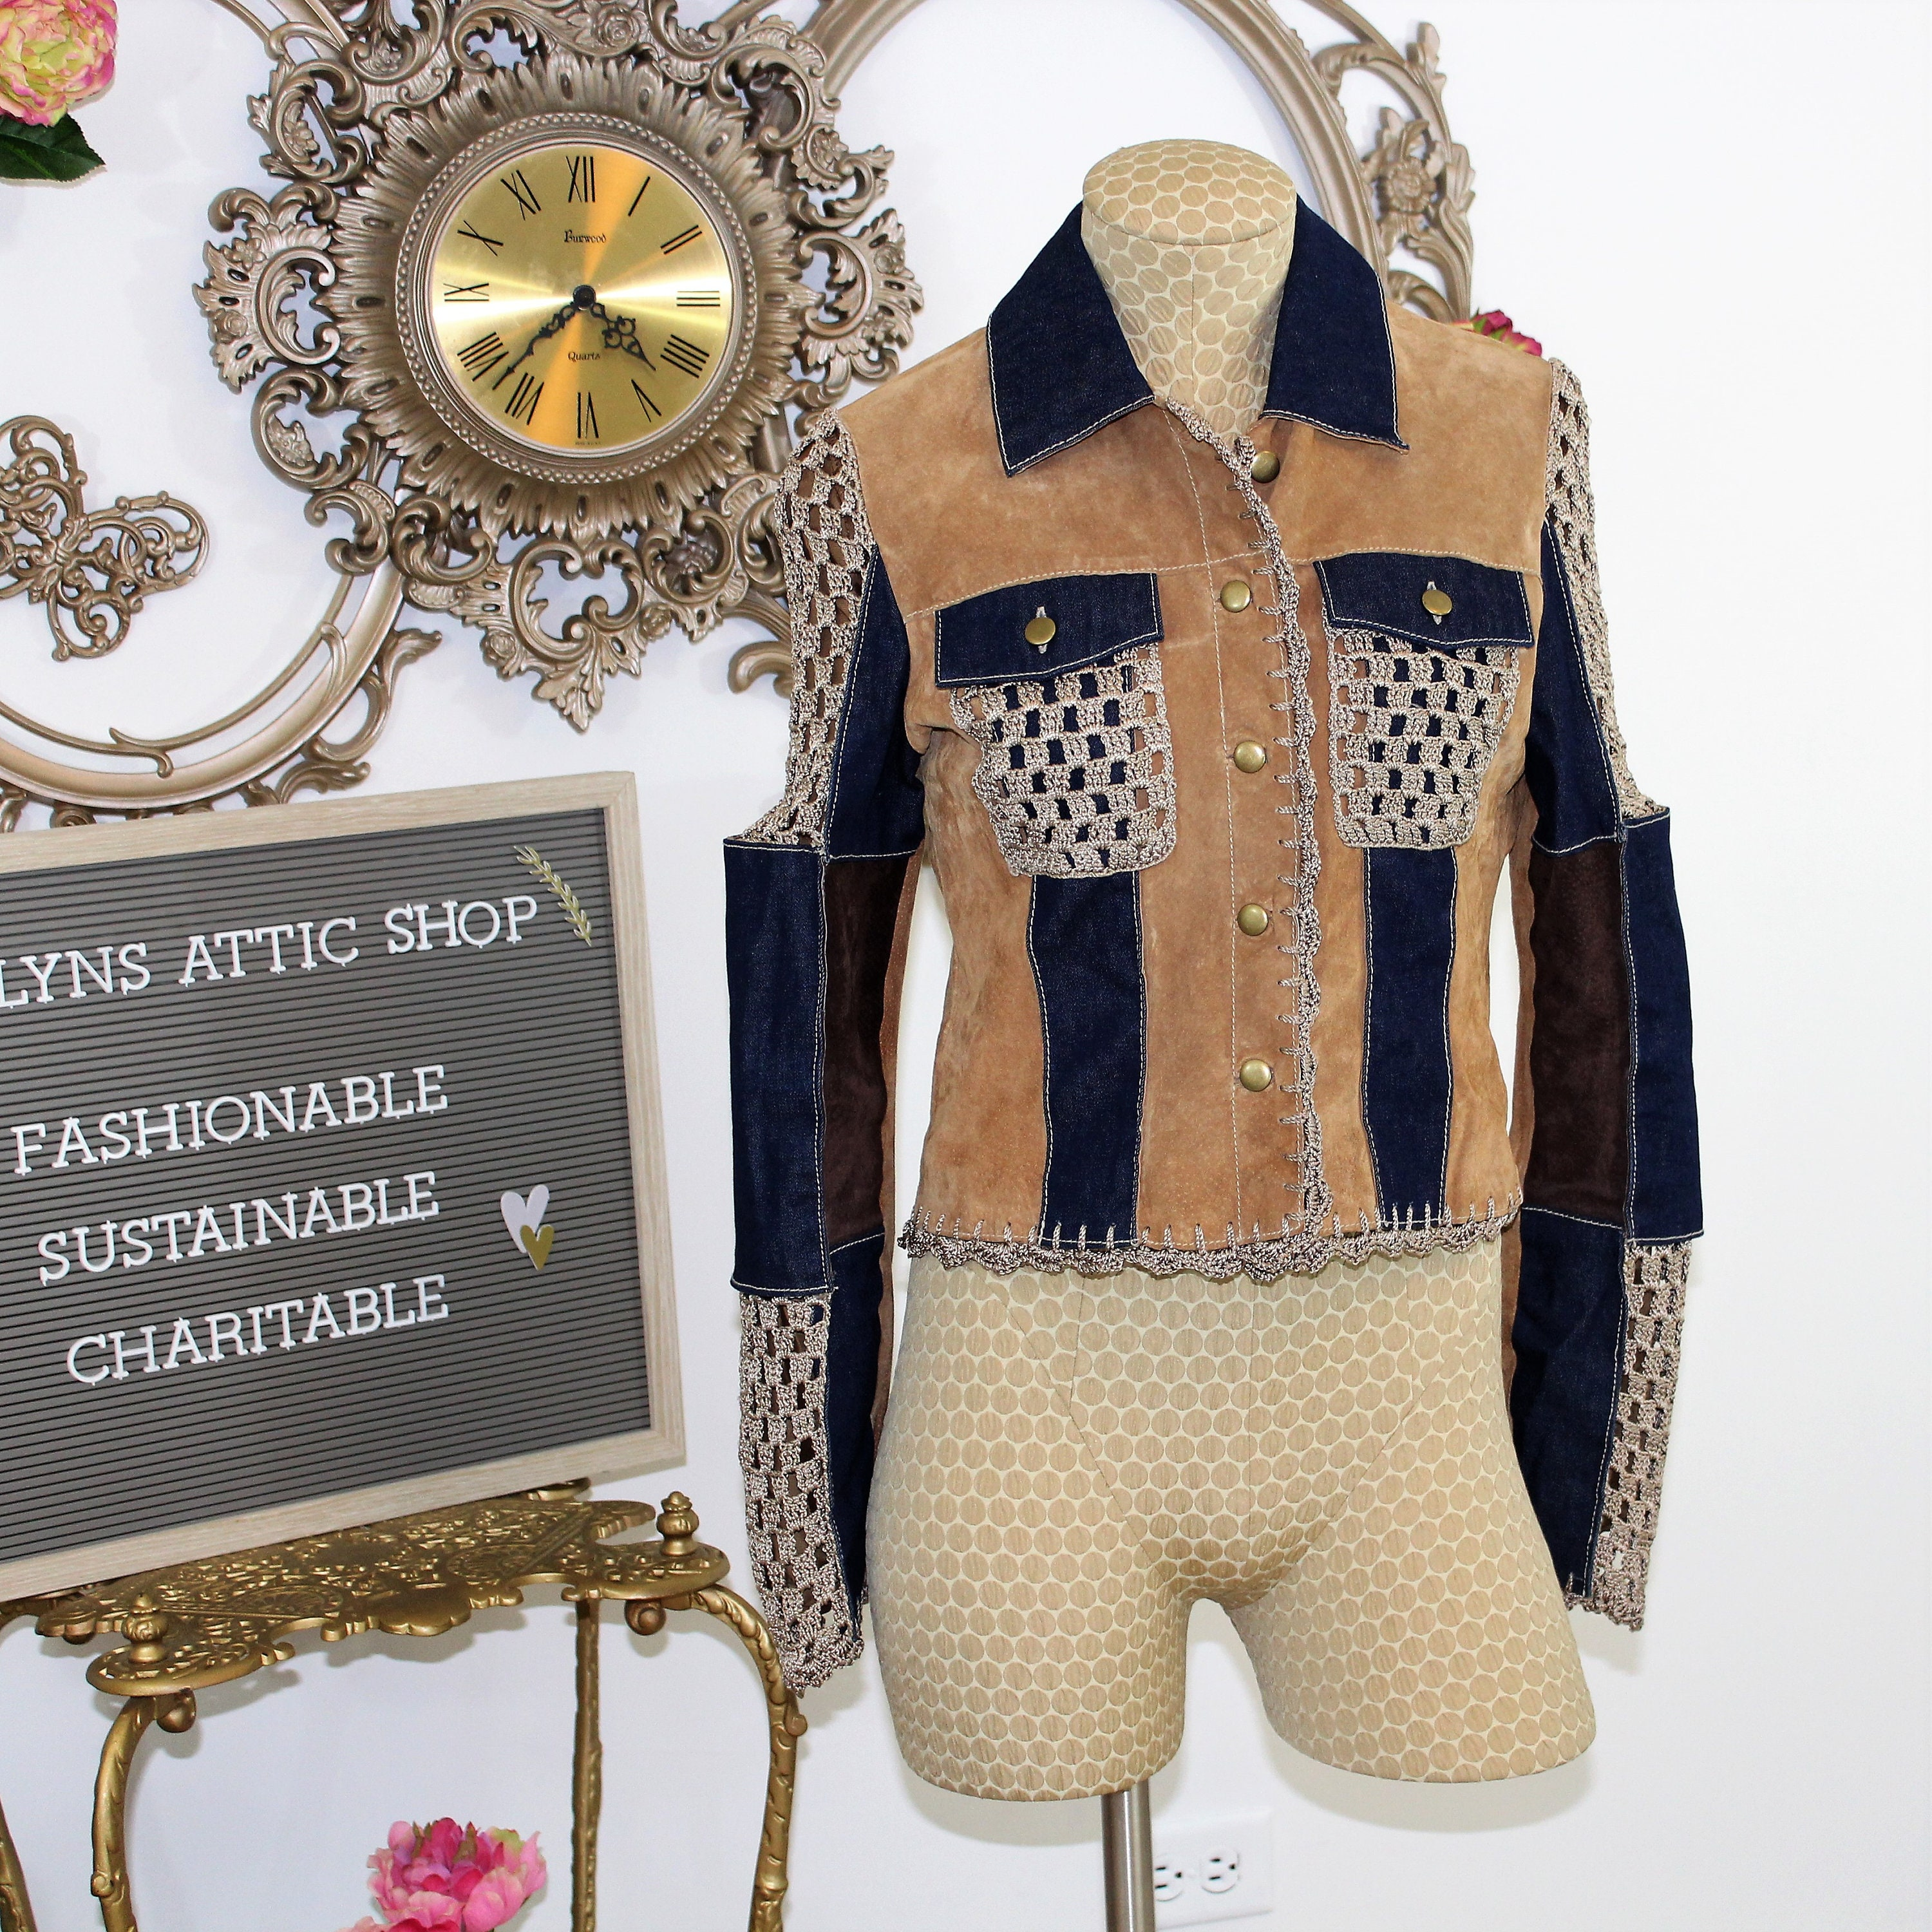 c9028a08a Patchwork Jacket size Small. Suede and Denim Jacket with Crochet ...